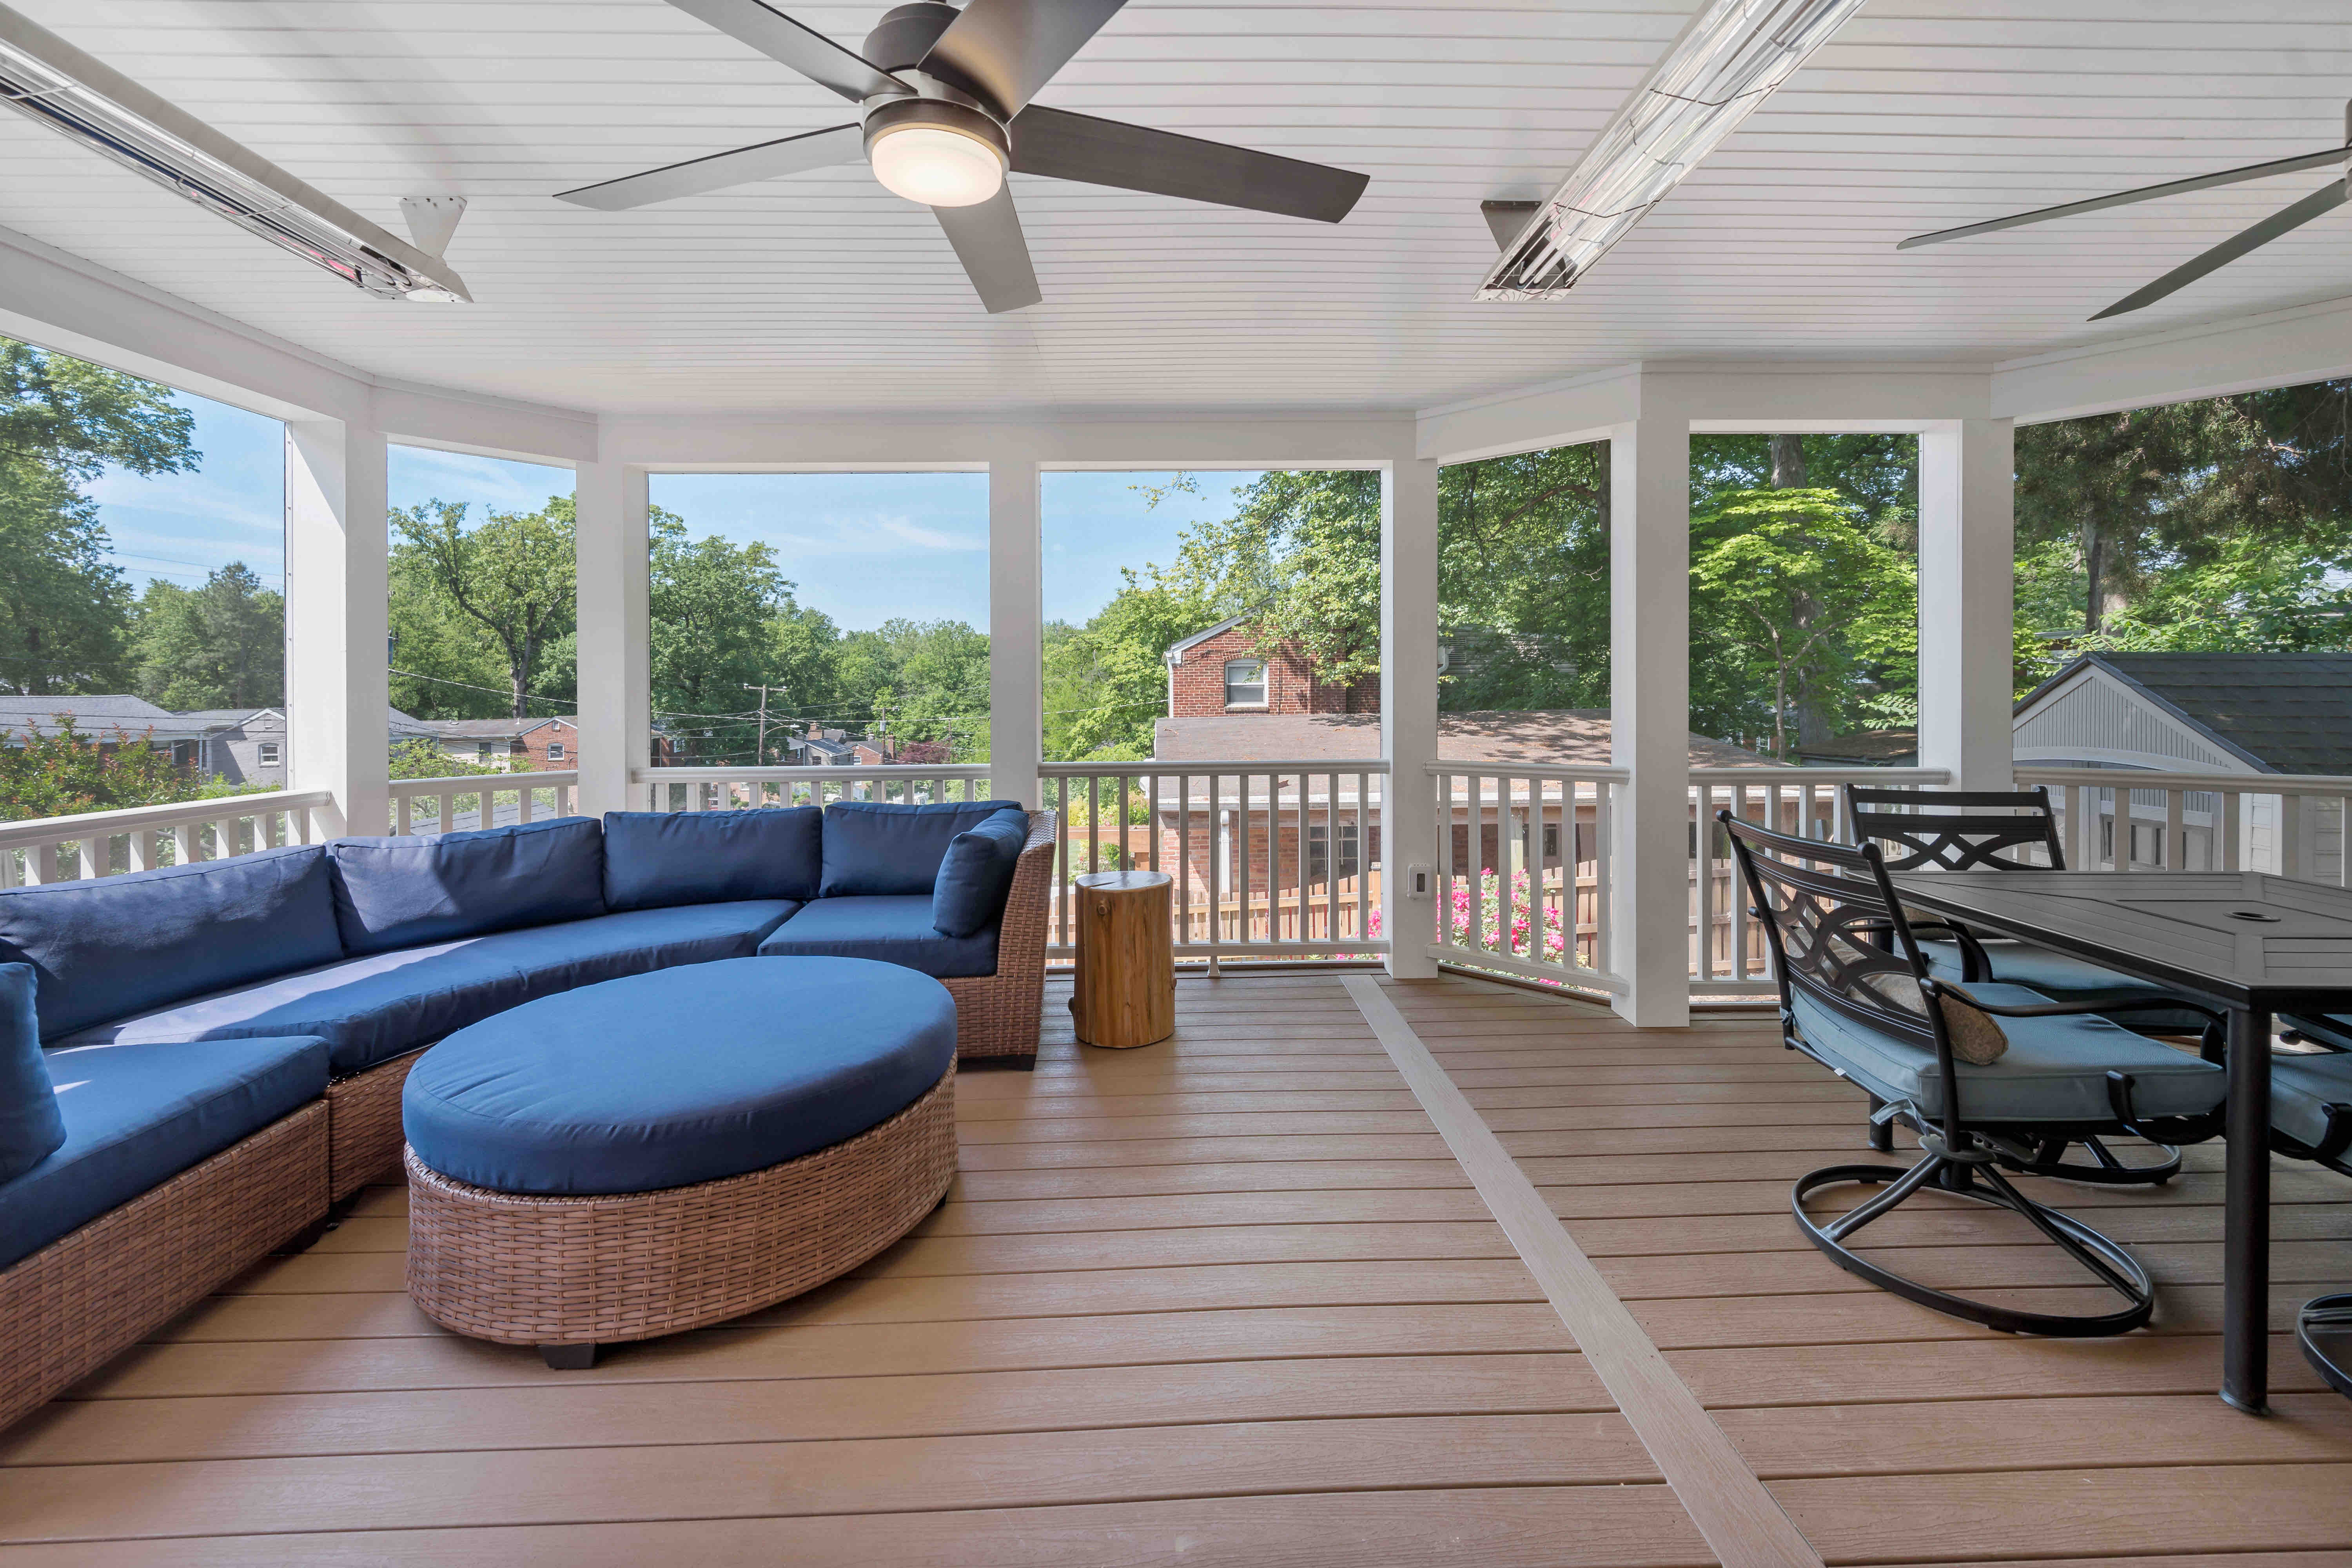 Beautiful Screened Porch Gives Arlington Homeowners Space for Entertaining and Relaxation